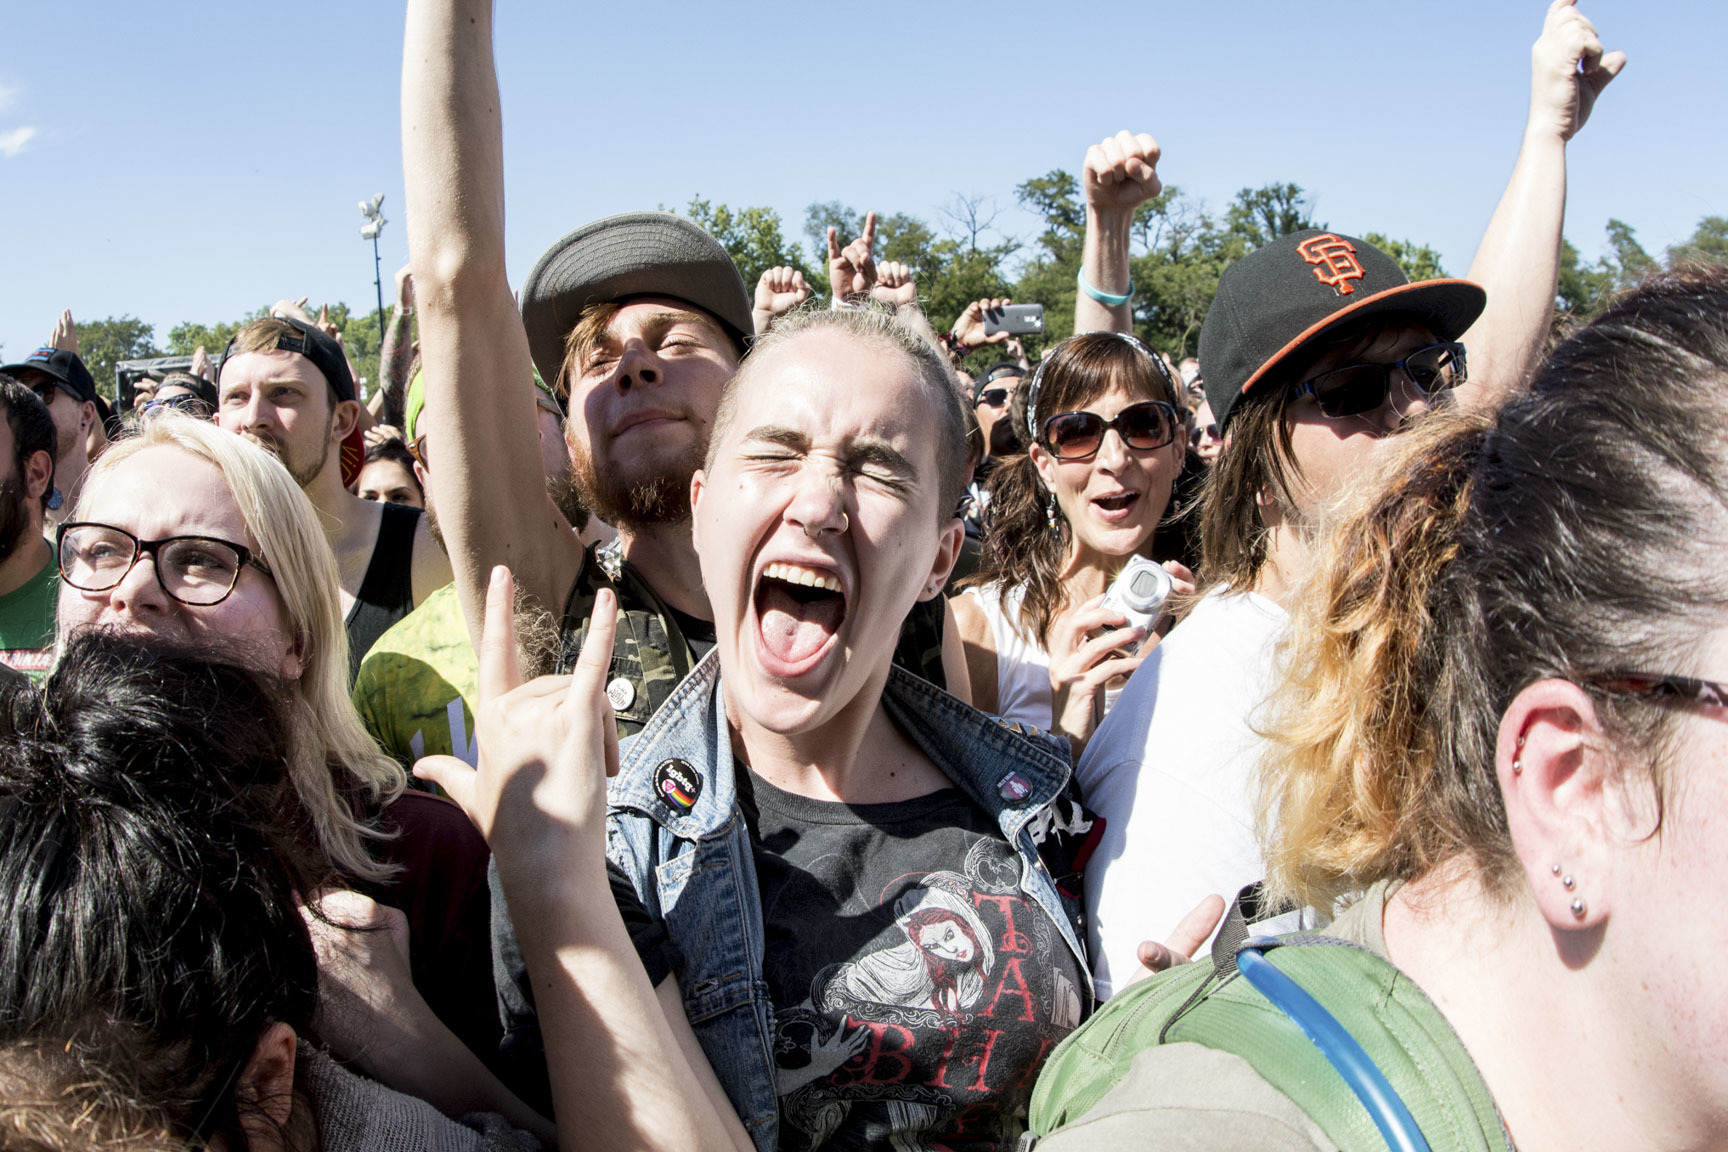 Find your favorite acts on Riot Fest's daily lineup